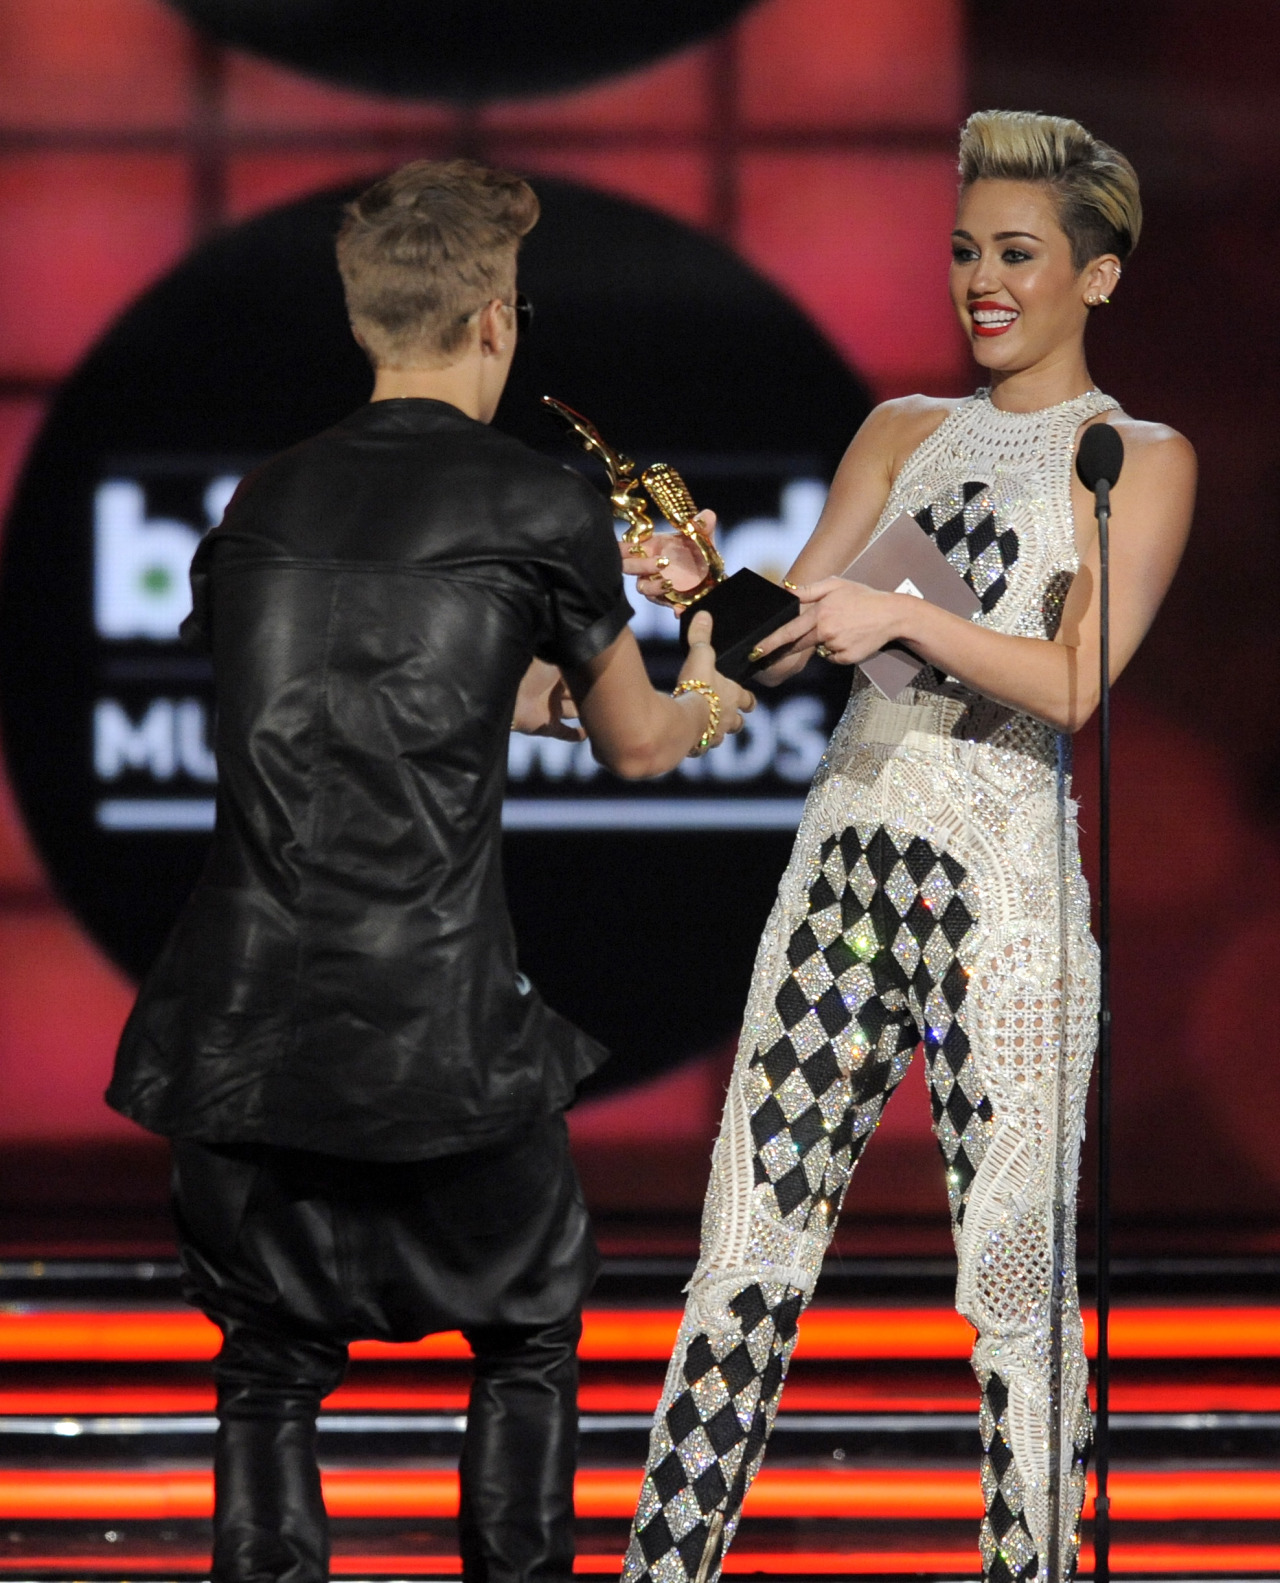 mileynation:  Another picture of Miley presenting Justin